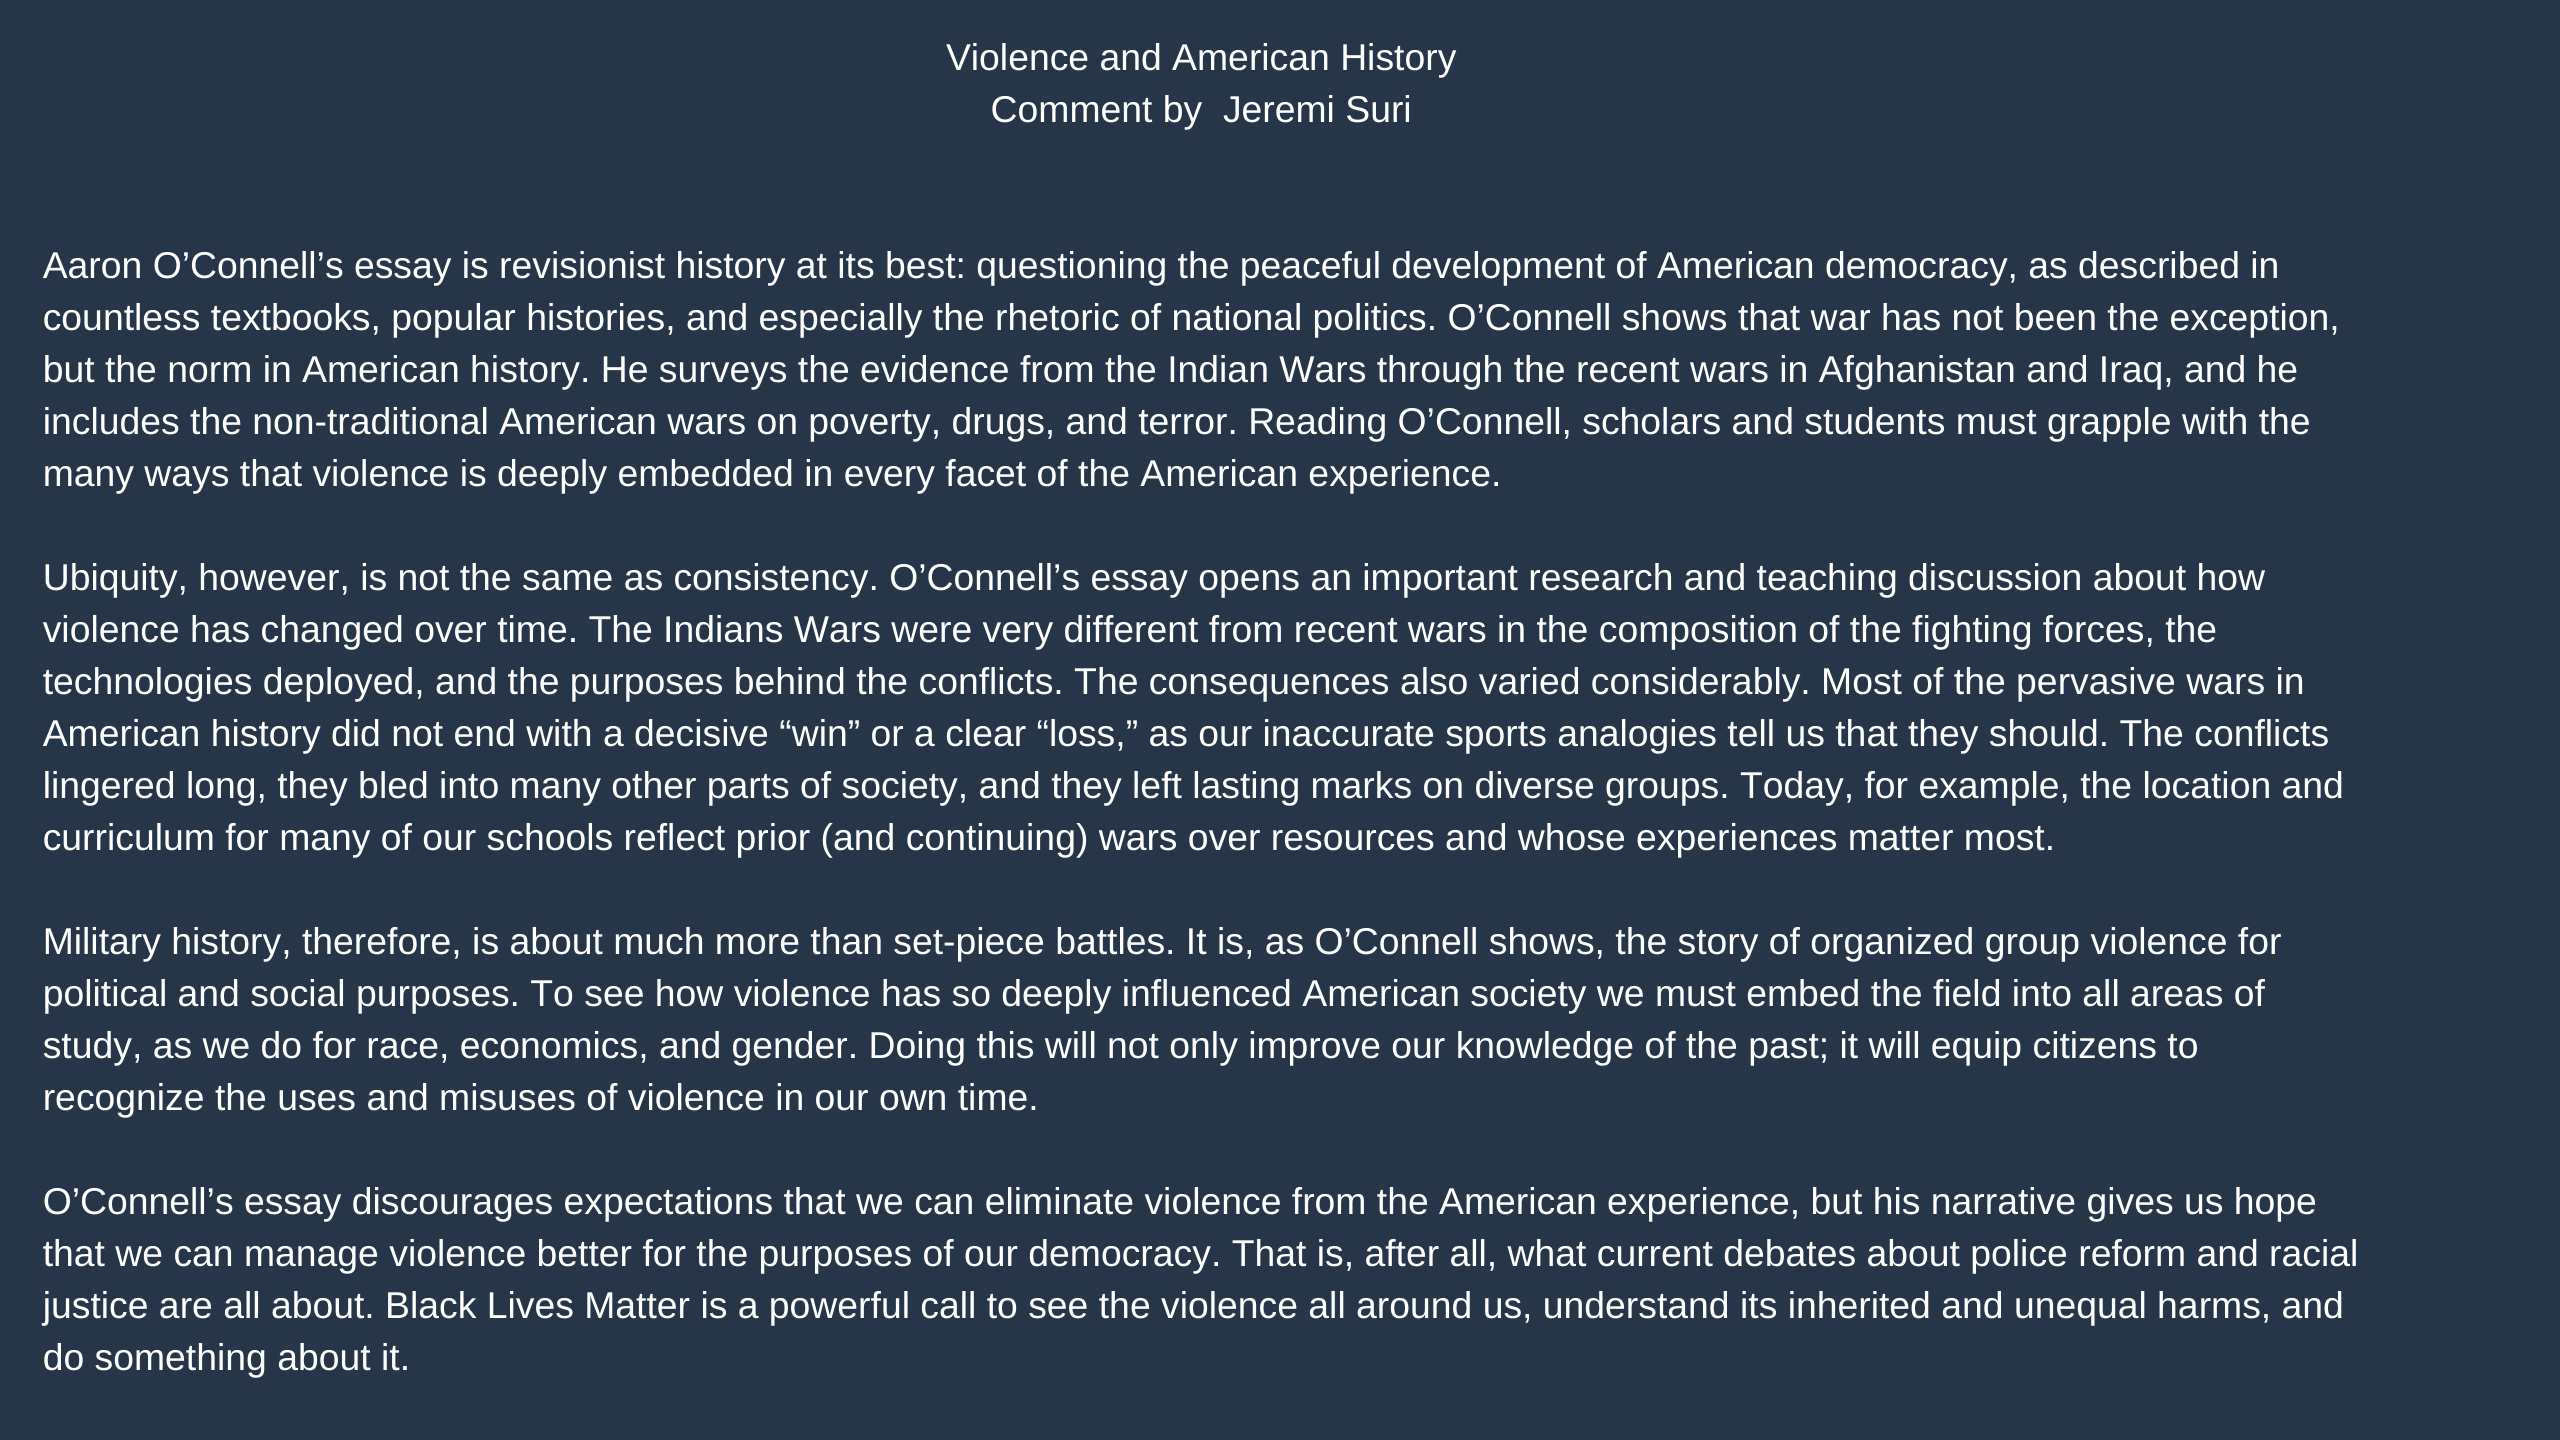 """Violence and American History   Jeremi Suri                  Aaron O'Connell's essay is revisionist history at its best: questioning the peaceful development of American democracy, as described in countless textbooks, popular histories, and especially the rhetoric of national politics. O'Connell shows that war has not been the exception, but the norm in American history. He surveys the evidence from the Indian Wars through the recent wars in Afghanistan and Iraq, and he includes the non-traditional American wars on poverty, drugs, and terror. Reading O'Connell, scholars and students must grapple with the many ways that violence is deeply embedded in every facet of the American experience.               Ubiquity, however, is not the same as consistency. O'Connell's essay opens an important research and teaching discussion about how violence has changed over time. The Indians Wars were very different from recent wars in the composition of the fighting forces, the technologies deployed, and the purposes behind the conflicts. The consequences also varied considerably. Most of the pervasive wars in American history did not end with a decisive """"win"""" or a clear """"loss,"""" as our inaccurate sports analogies tell us that they should. The conflicts lingered long, they bled into many other parts of society, and they left lasting marks on diverse groups. Today, for example, the location and curriculum for many of our schools reflect prior (and continuing) wars over resources and whose experiences matter most.                Military history, therefore, is about much more than set-piece battles. It is, as O'Connell shows, the story of organized group violence for political and social purposes. To see how violence has so deeply influenced American society we must embed the field into all areas of study, as we do for race, economics, and gender. Doing this will not only improve our knowledge of the past; it will equip citizens to recognize the uses and misuses of violence in our own """